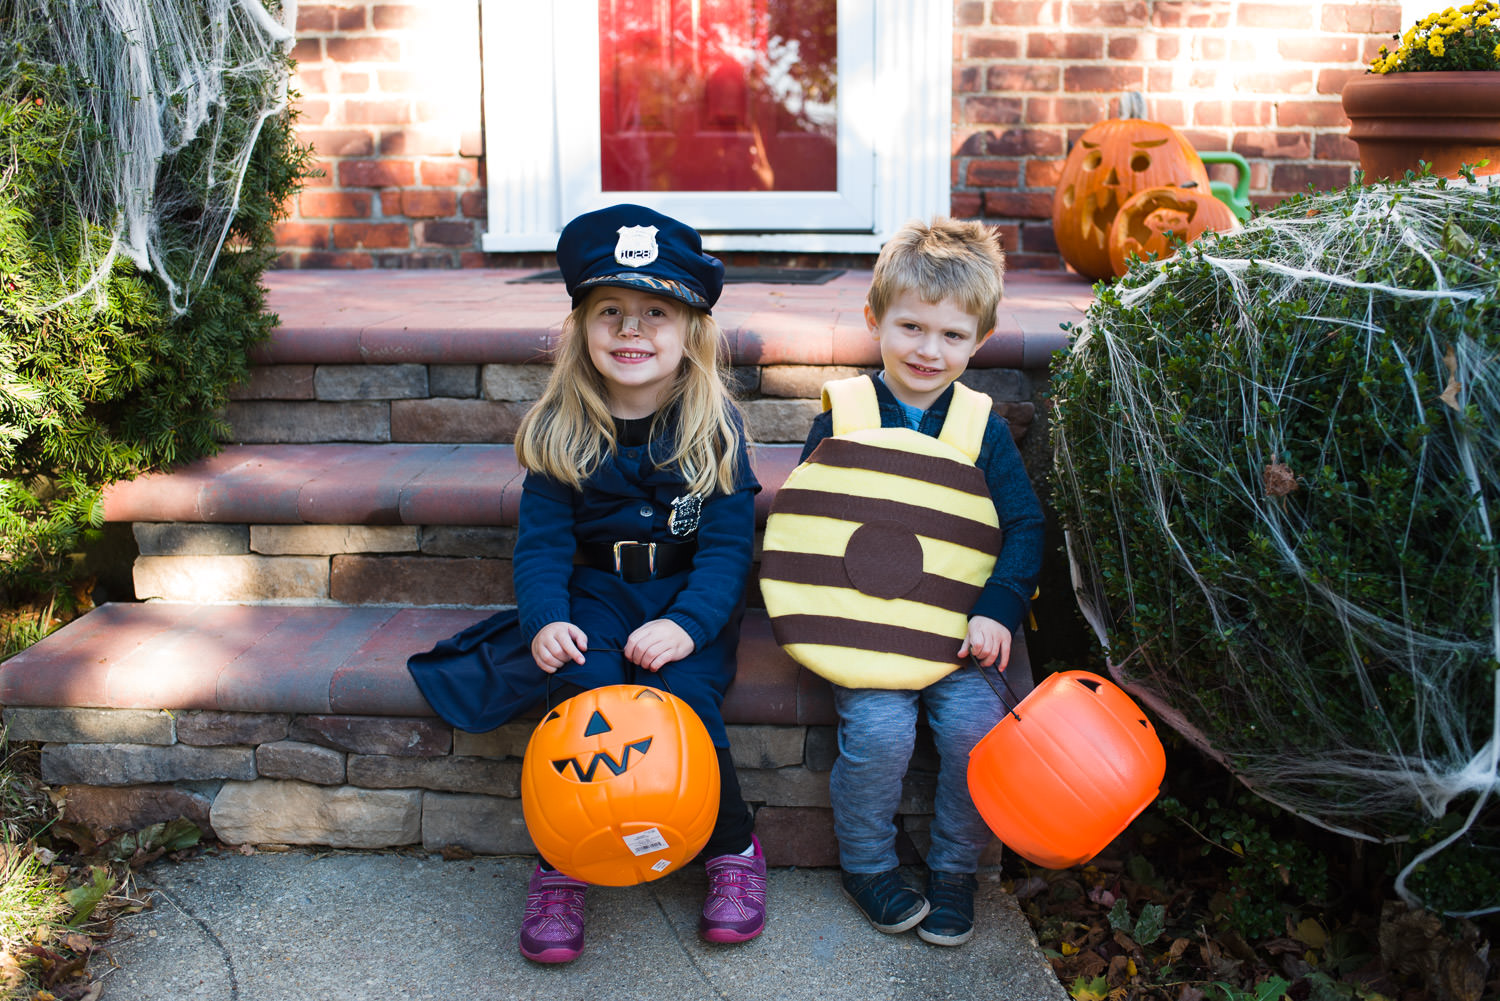 Two children dressed in costumes on Halloween.